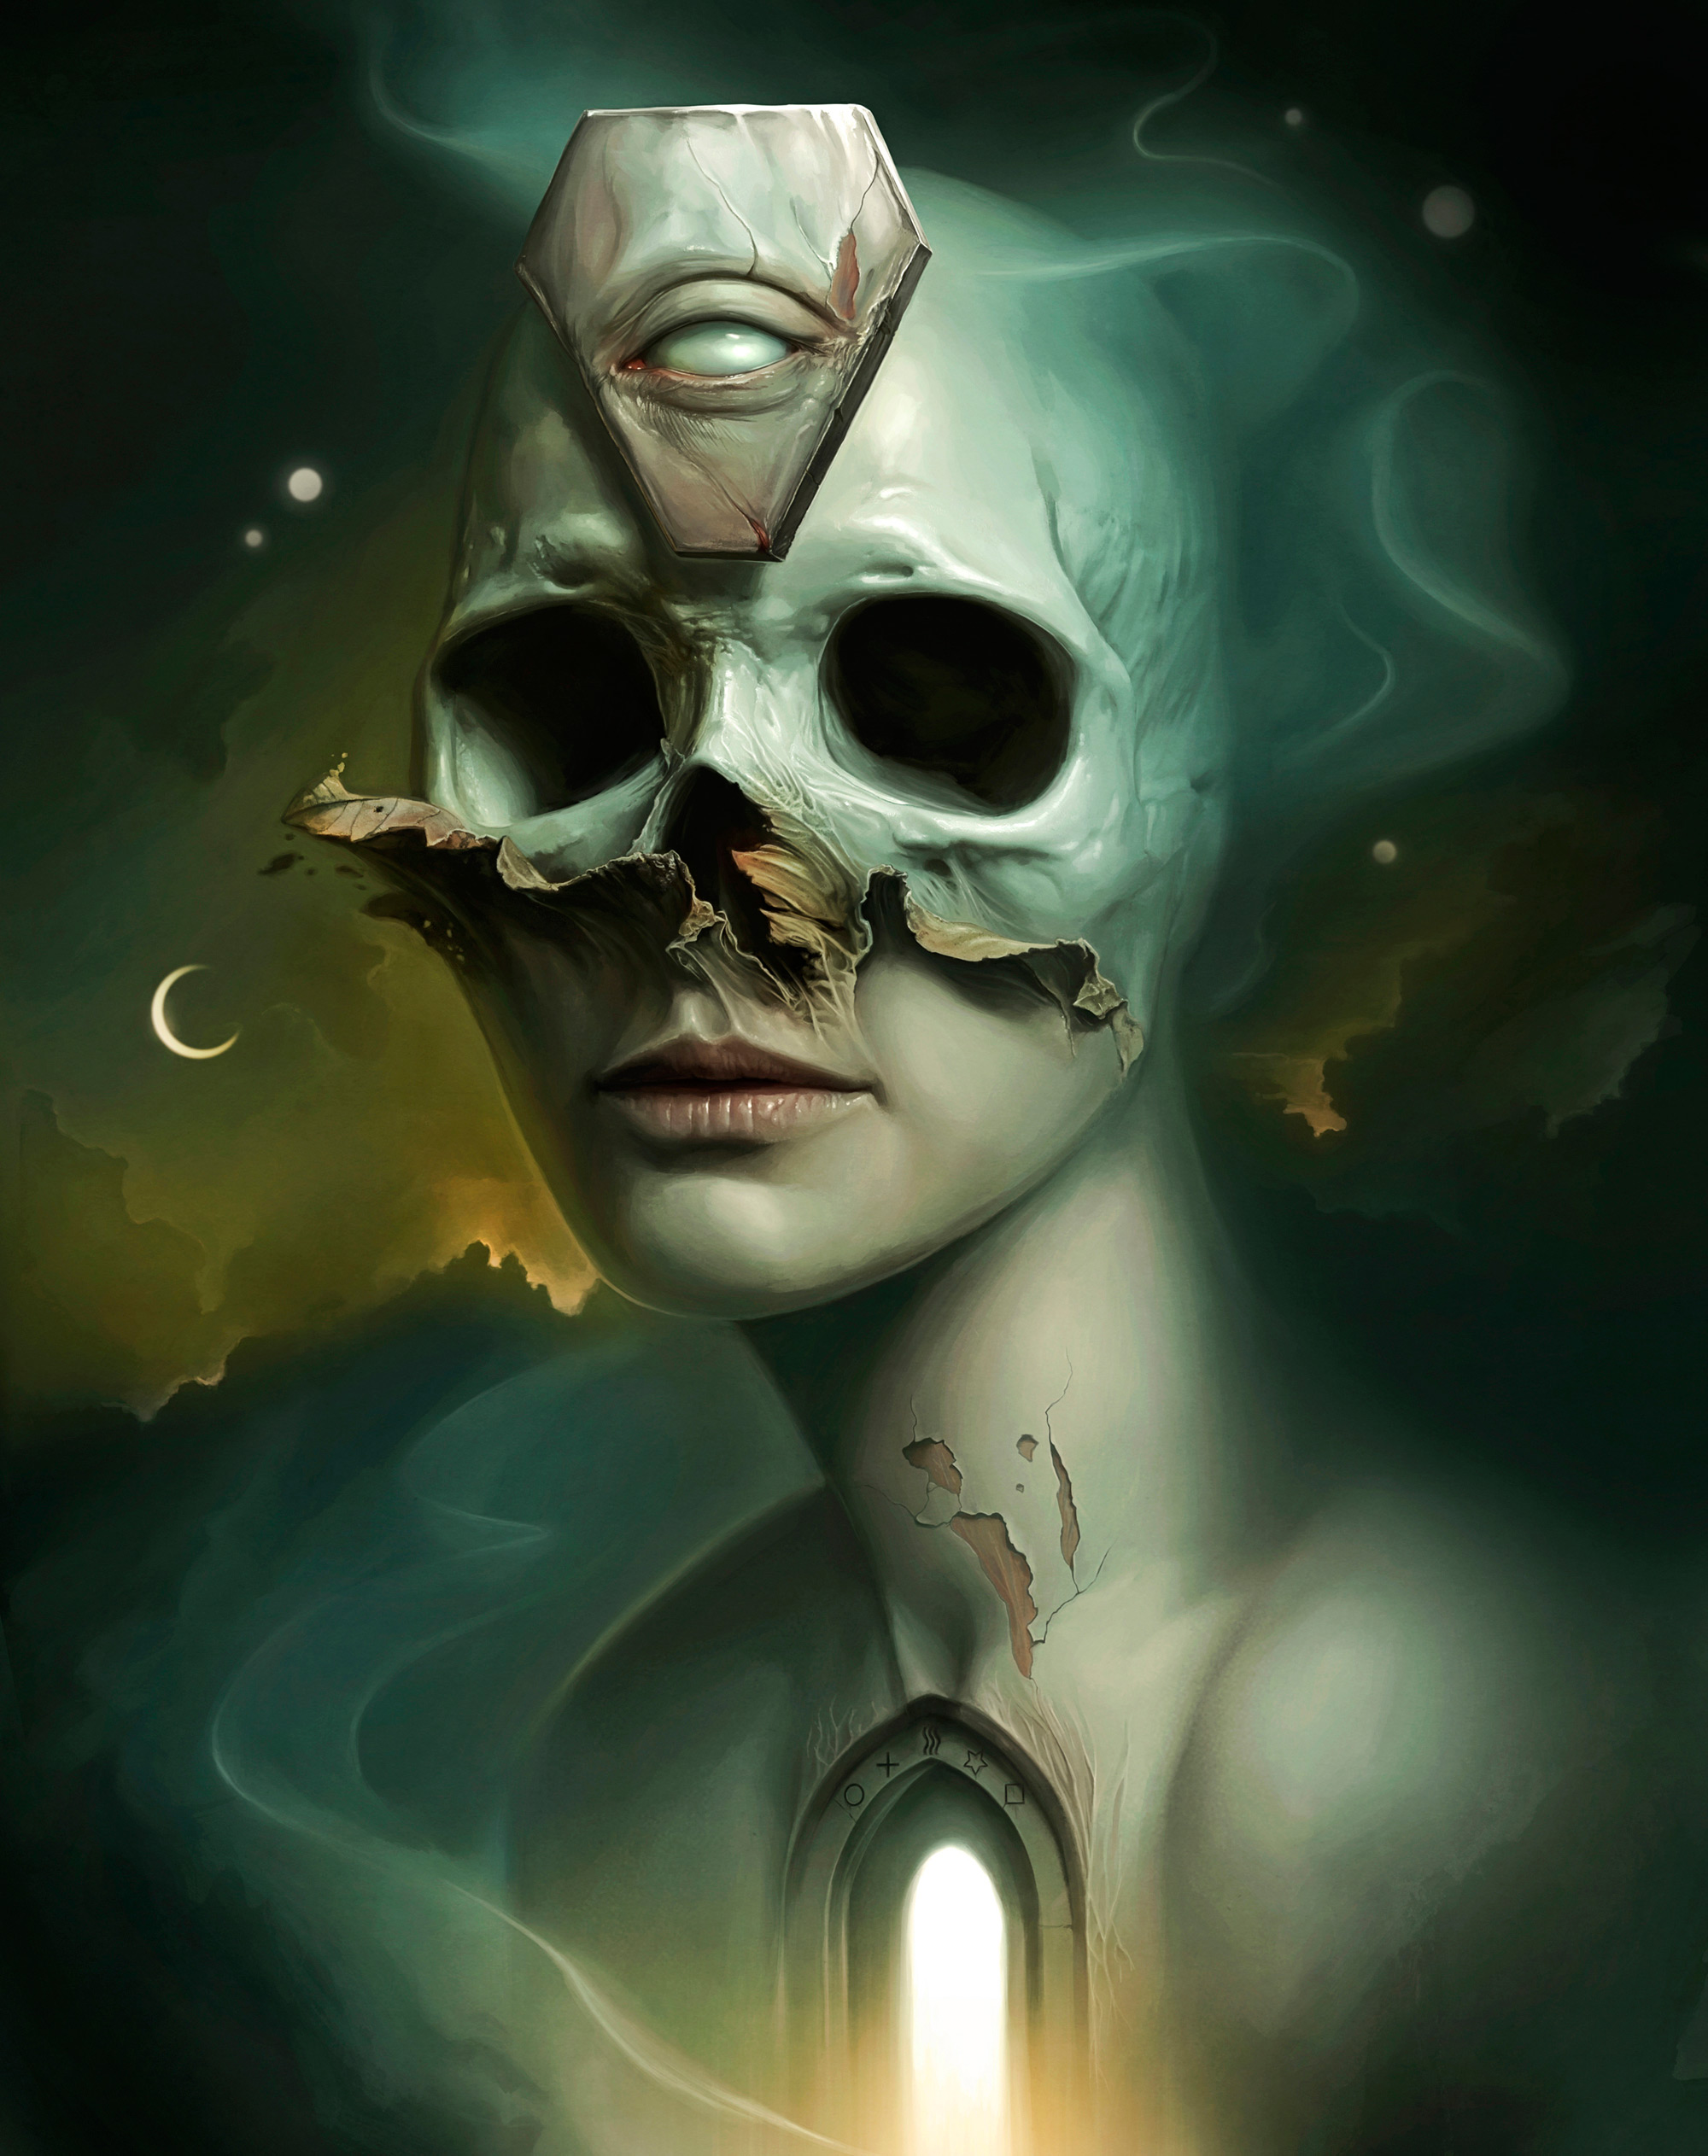 Macabre, Supernatural Digital Paintings by David Seidman